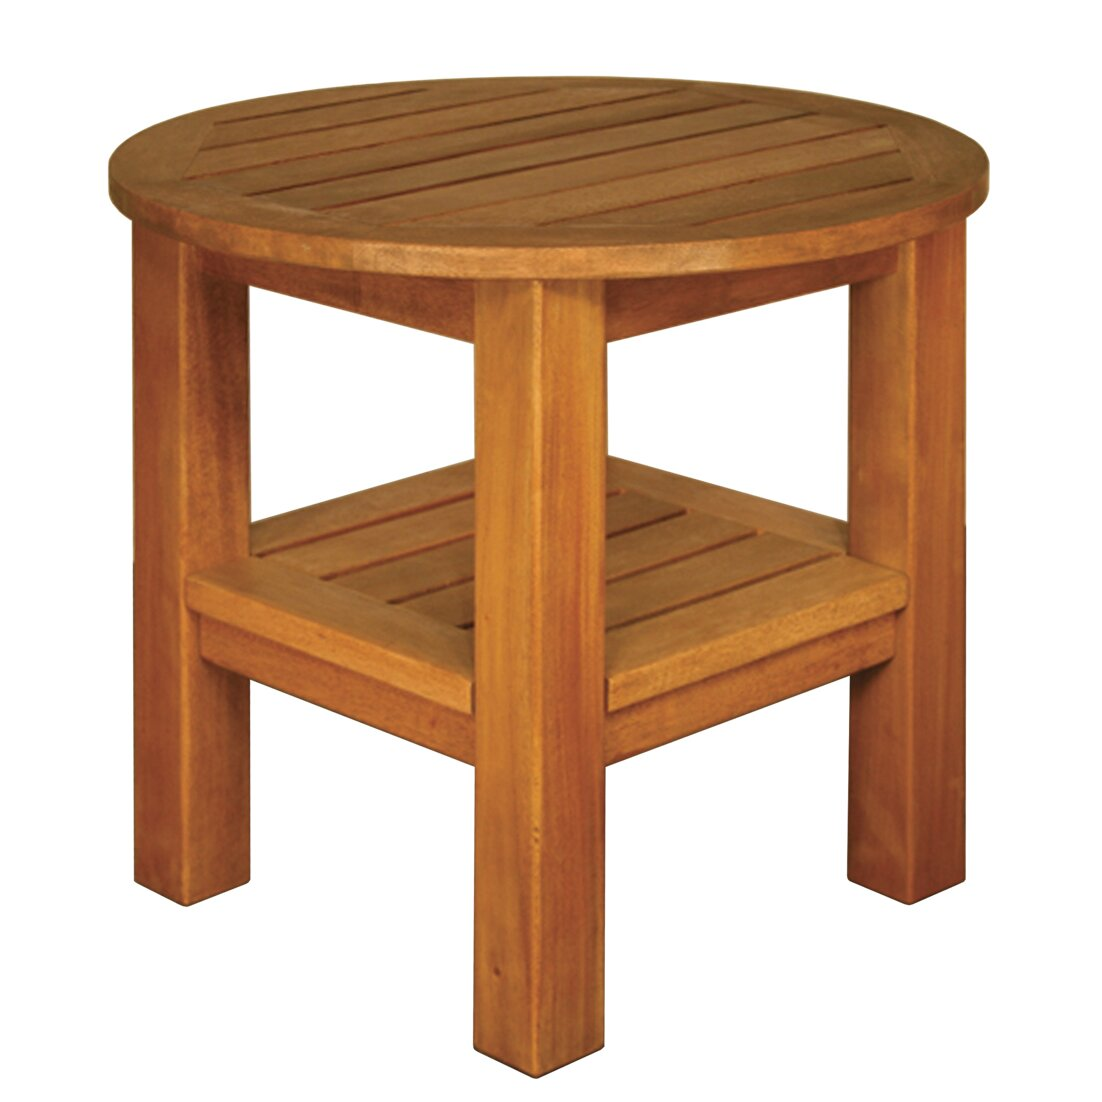 Blue Star Group Terrace Mates Two Shelf High Round Side